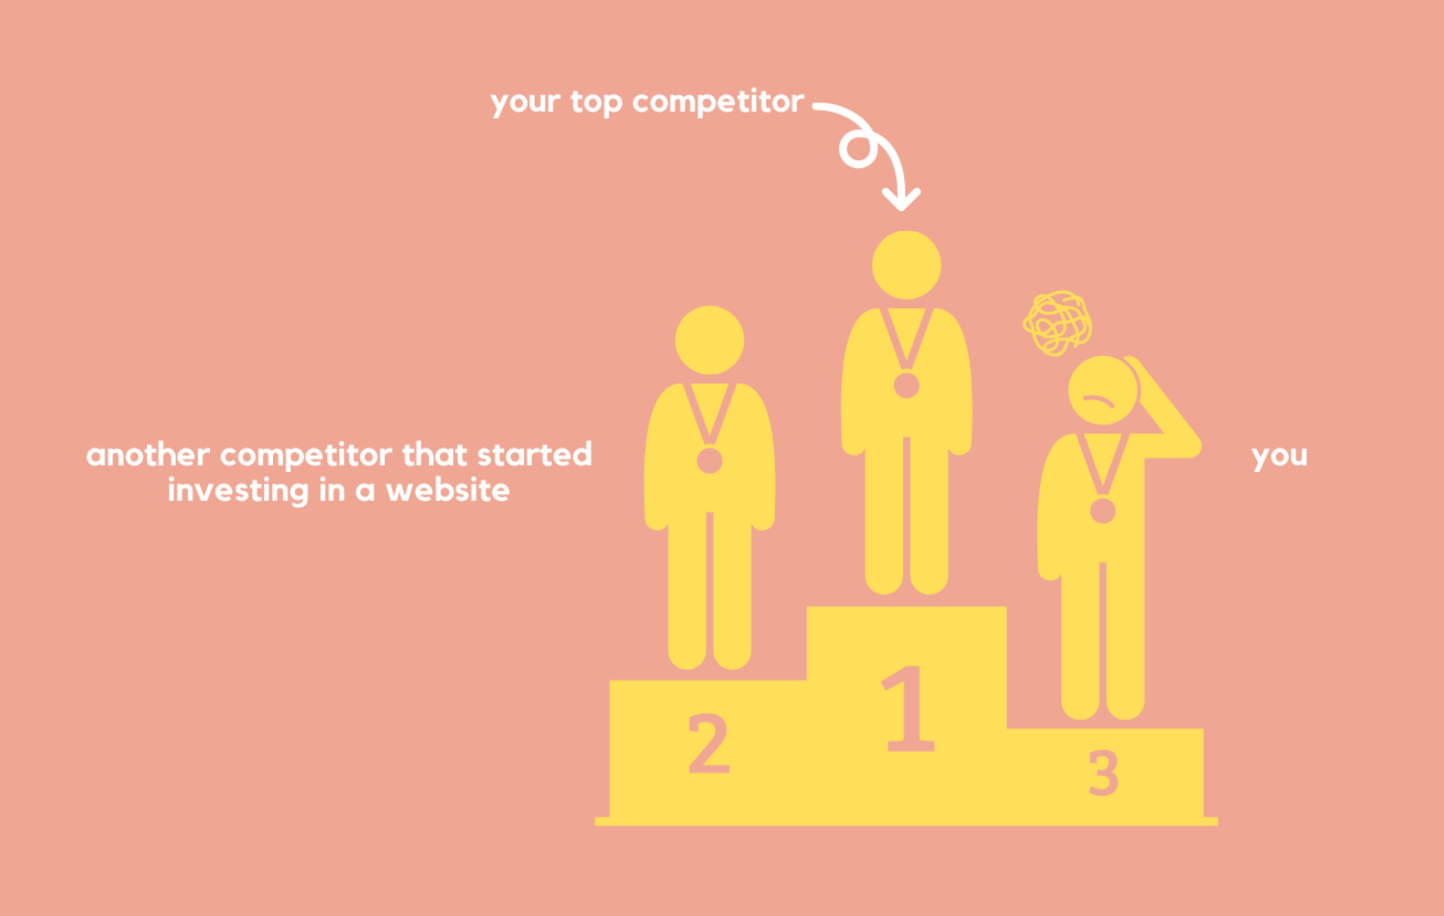 Your competitors vs. you